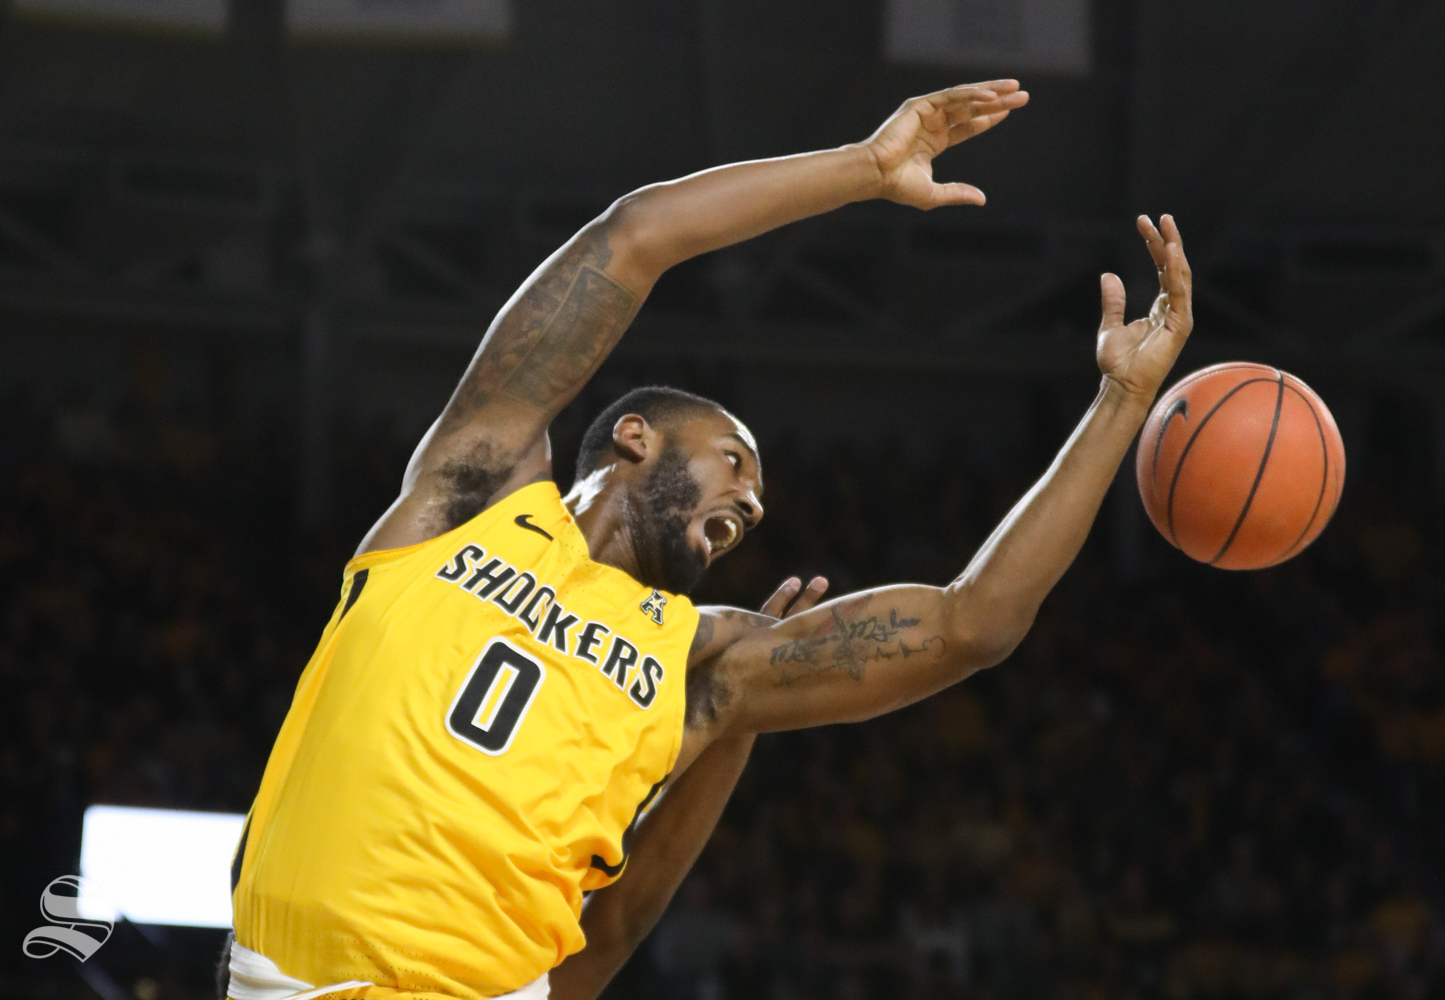 Temple upsets No 16 Wichita State in OT